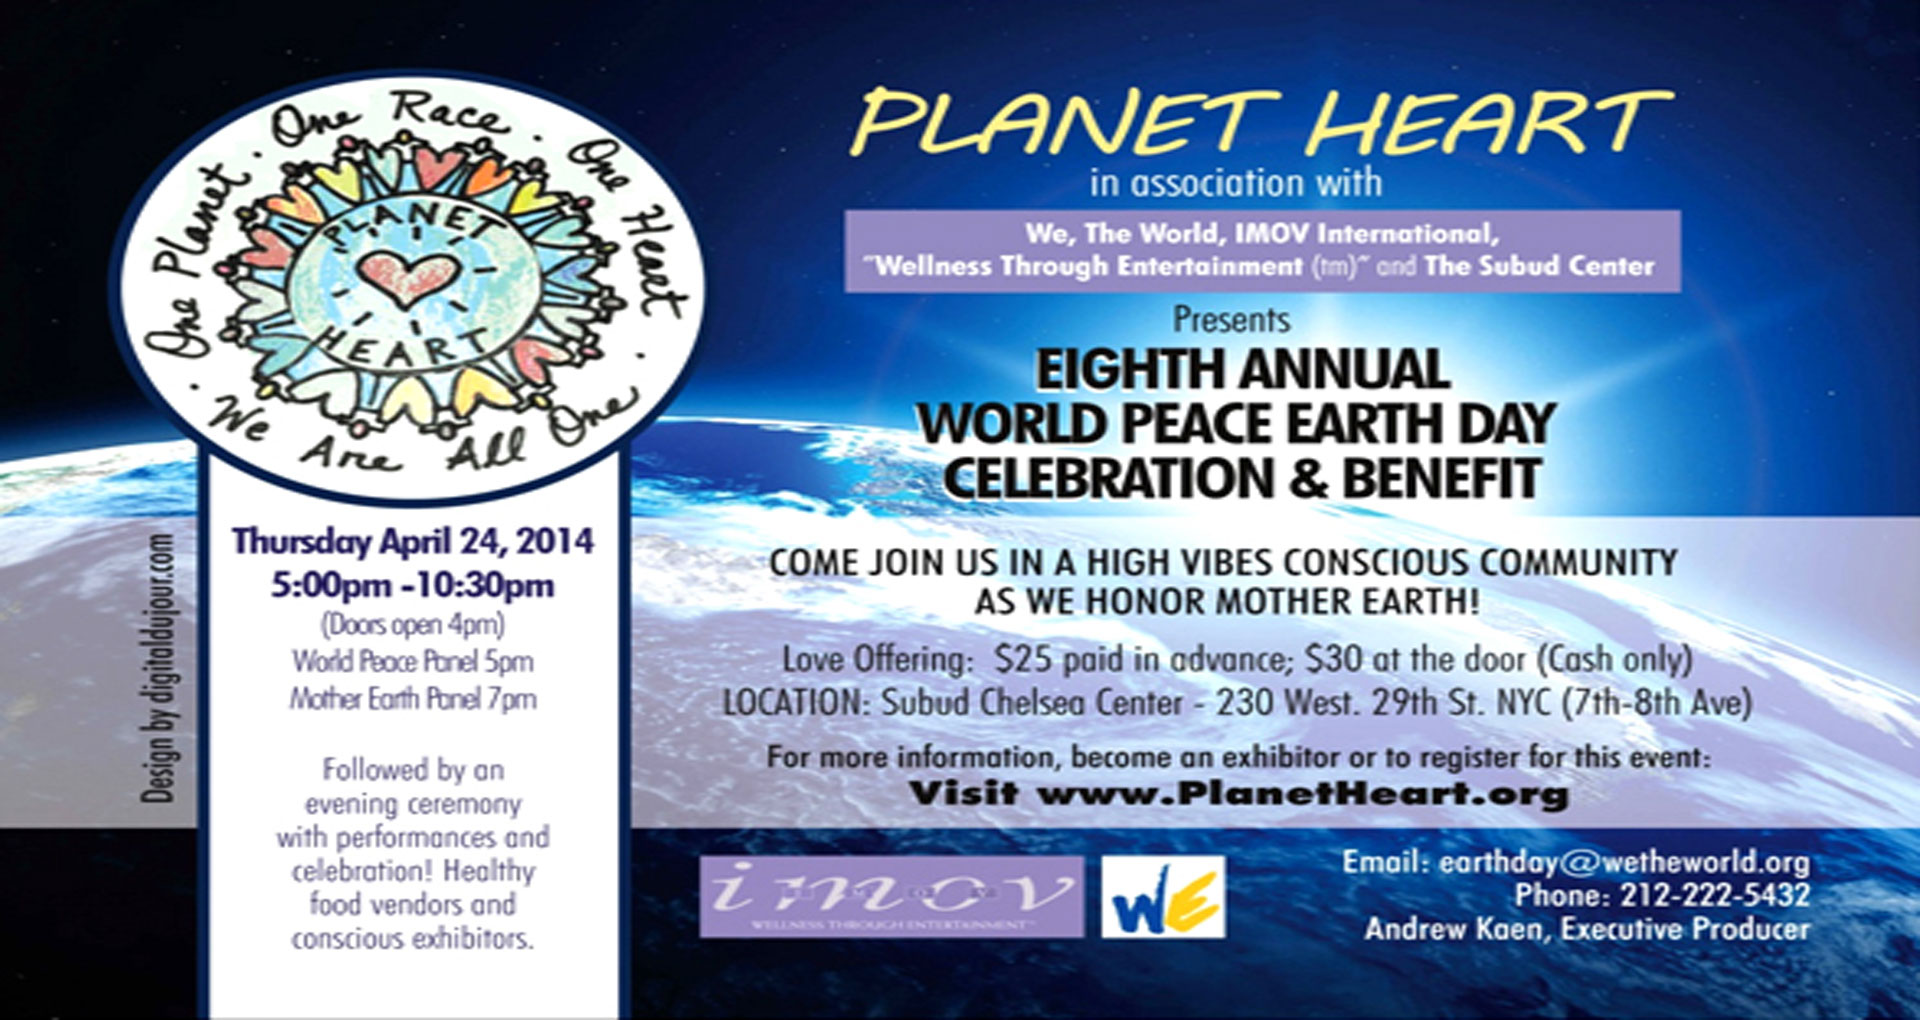 8th Annual Planet Heart Celebration in NYC – April 24th, 2014- Gary Null to be Guest Speaker